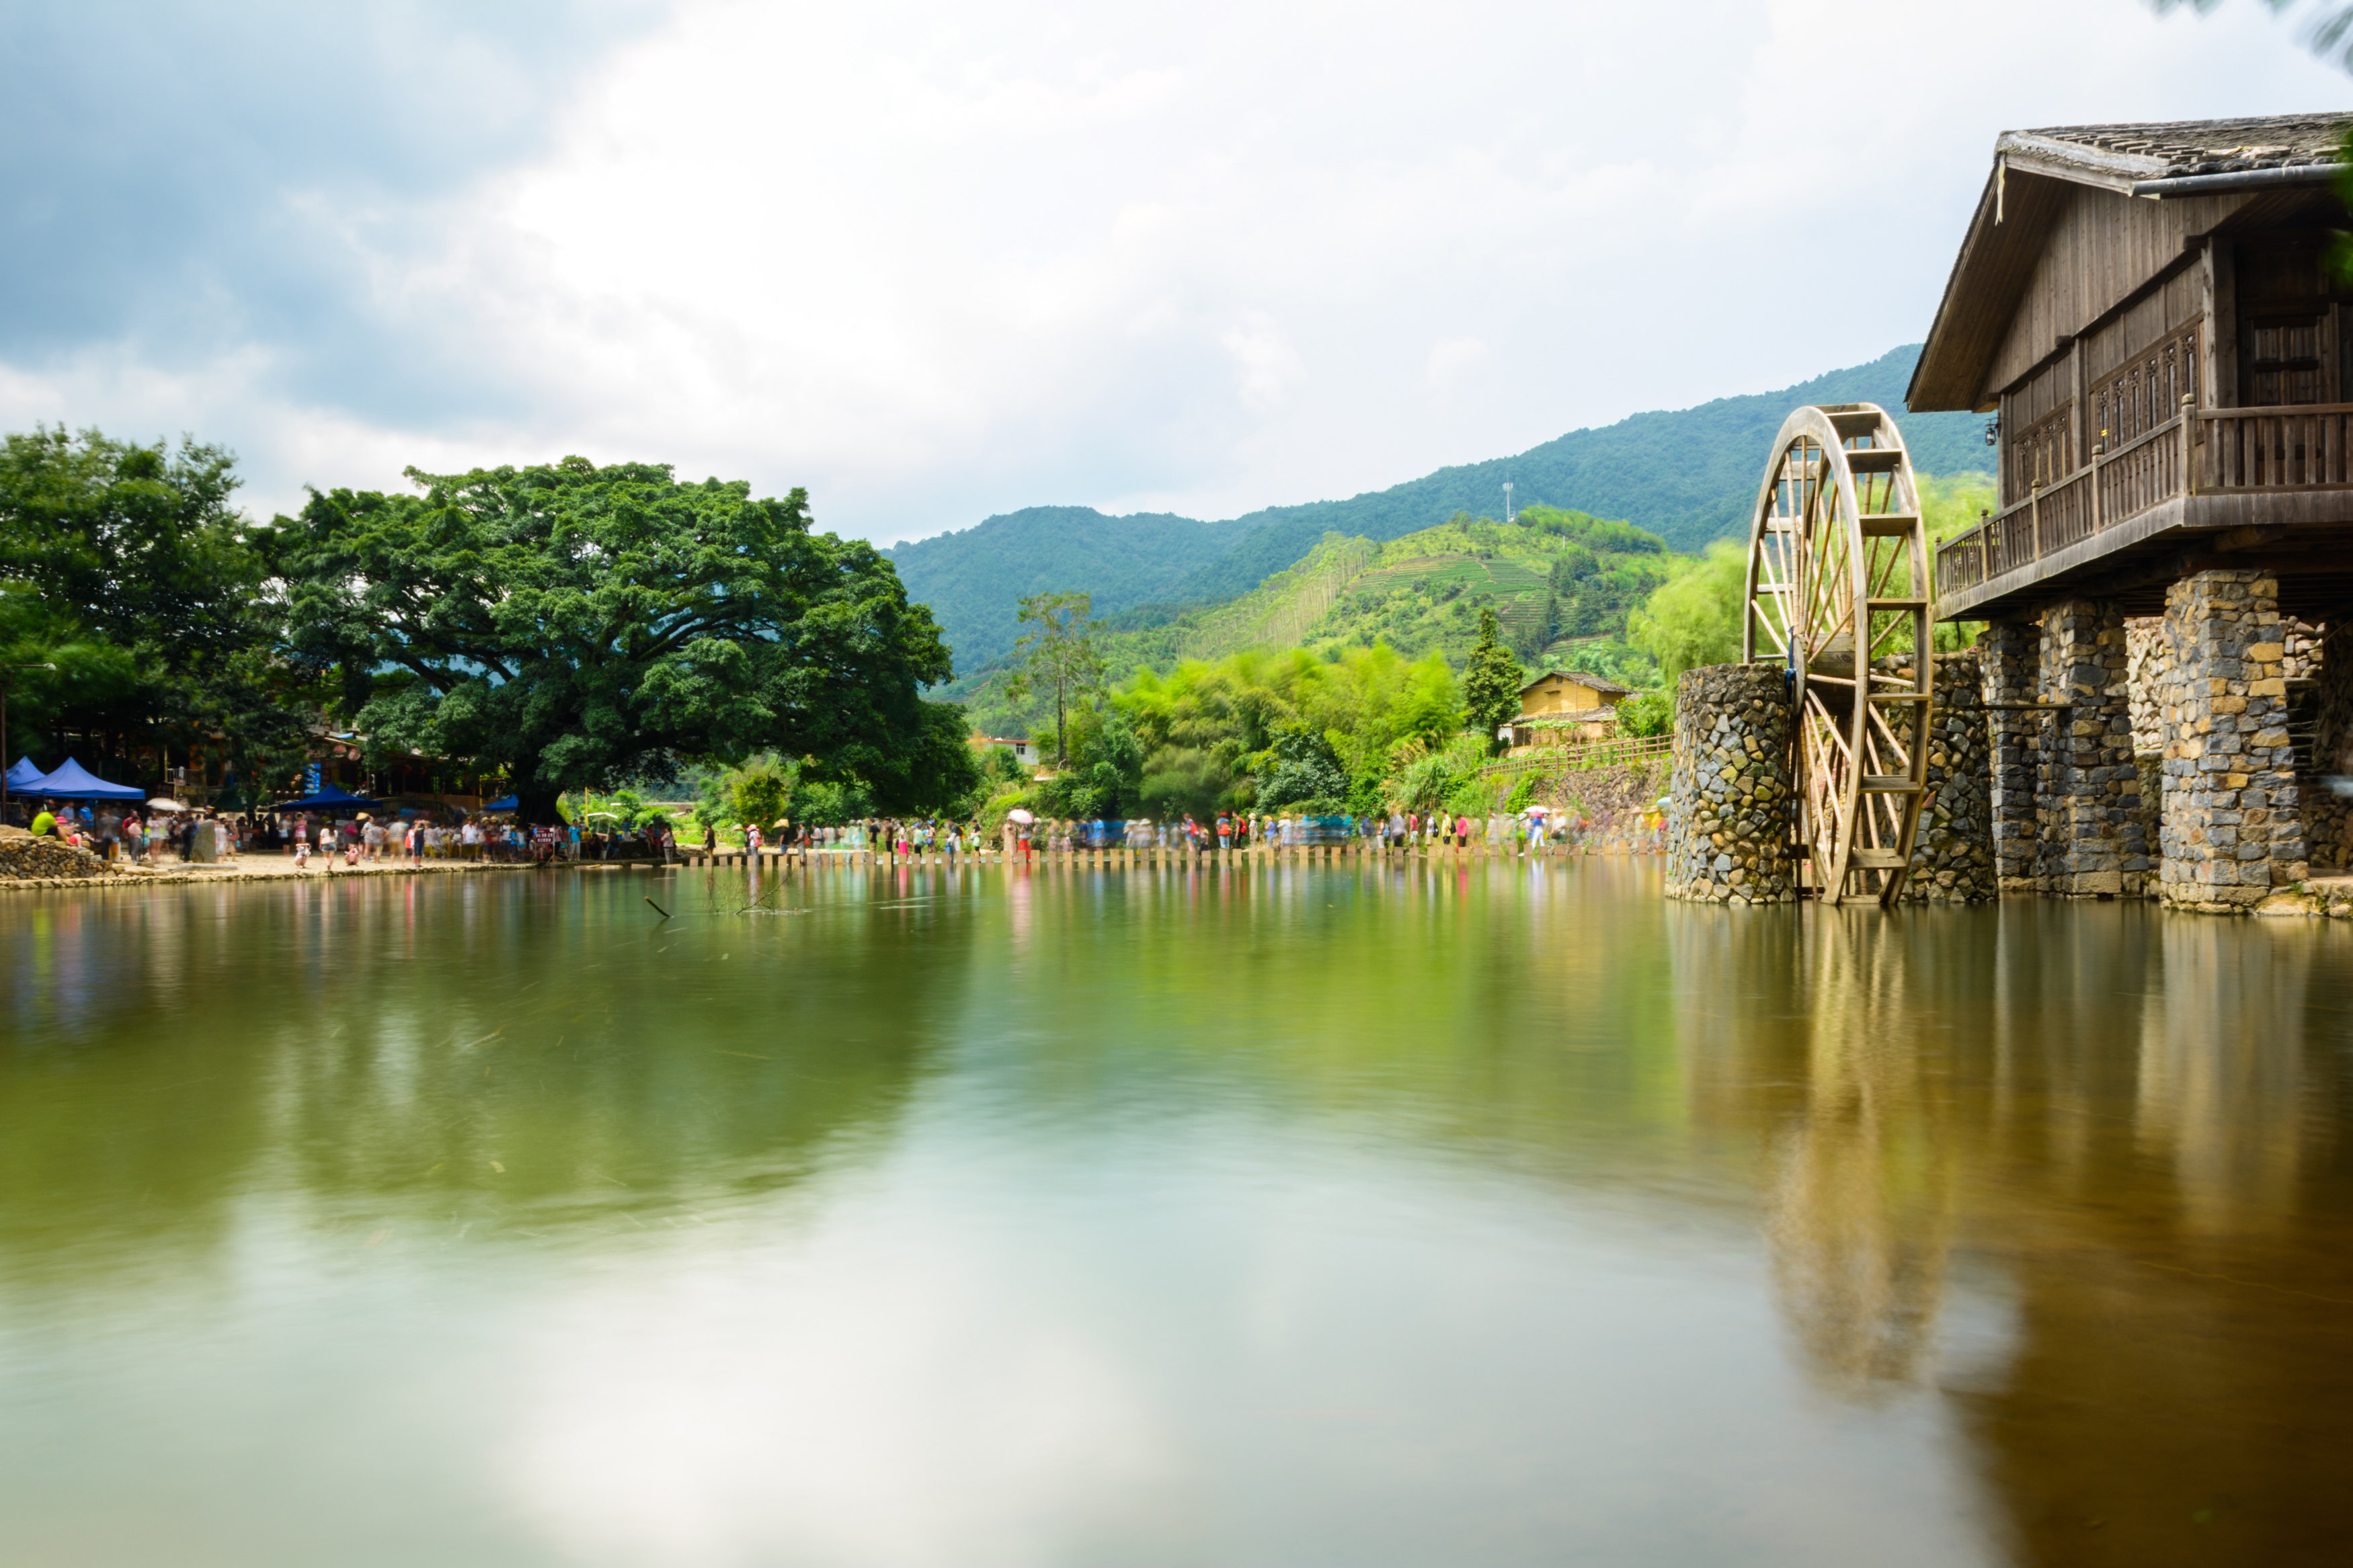 Yunshuiyao Scenic Spots Private Day Tour